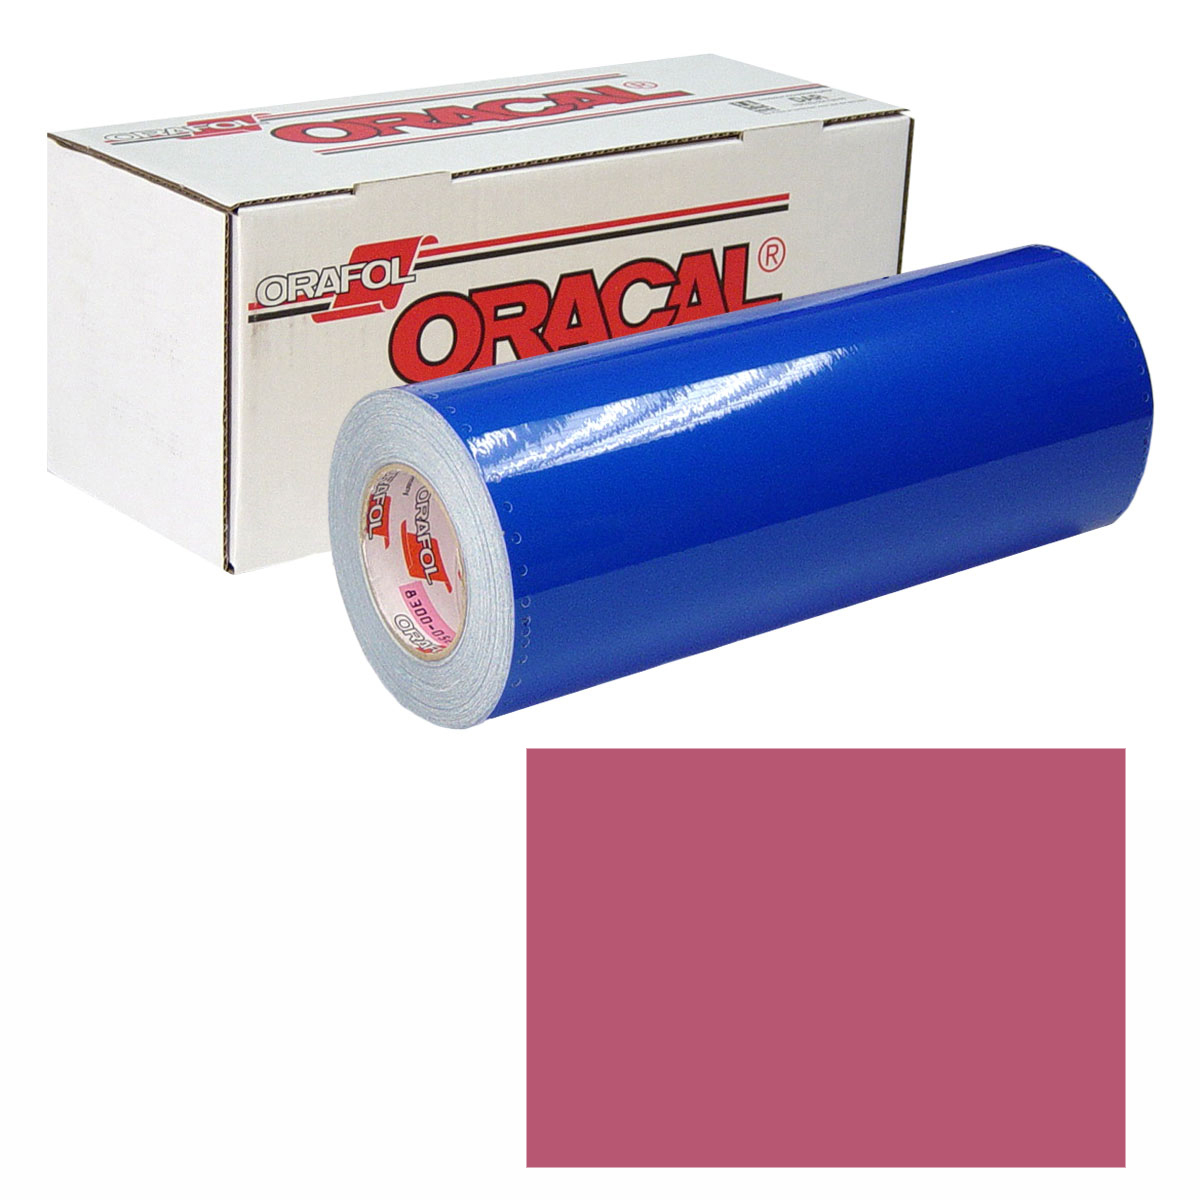 ORACAL 631 Unp 30in X 50yd 430 Lip Stick